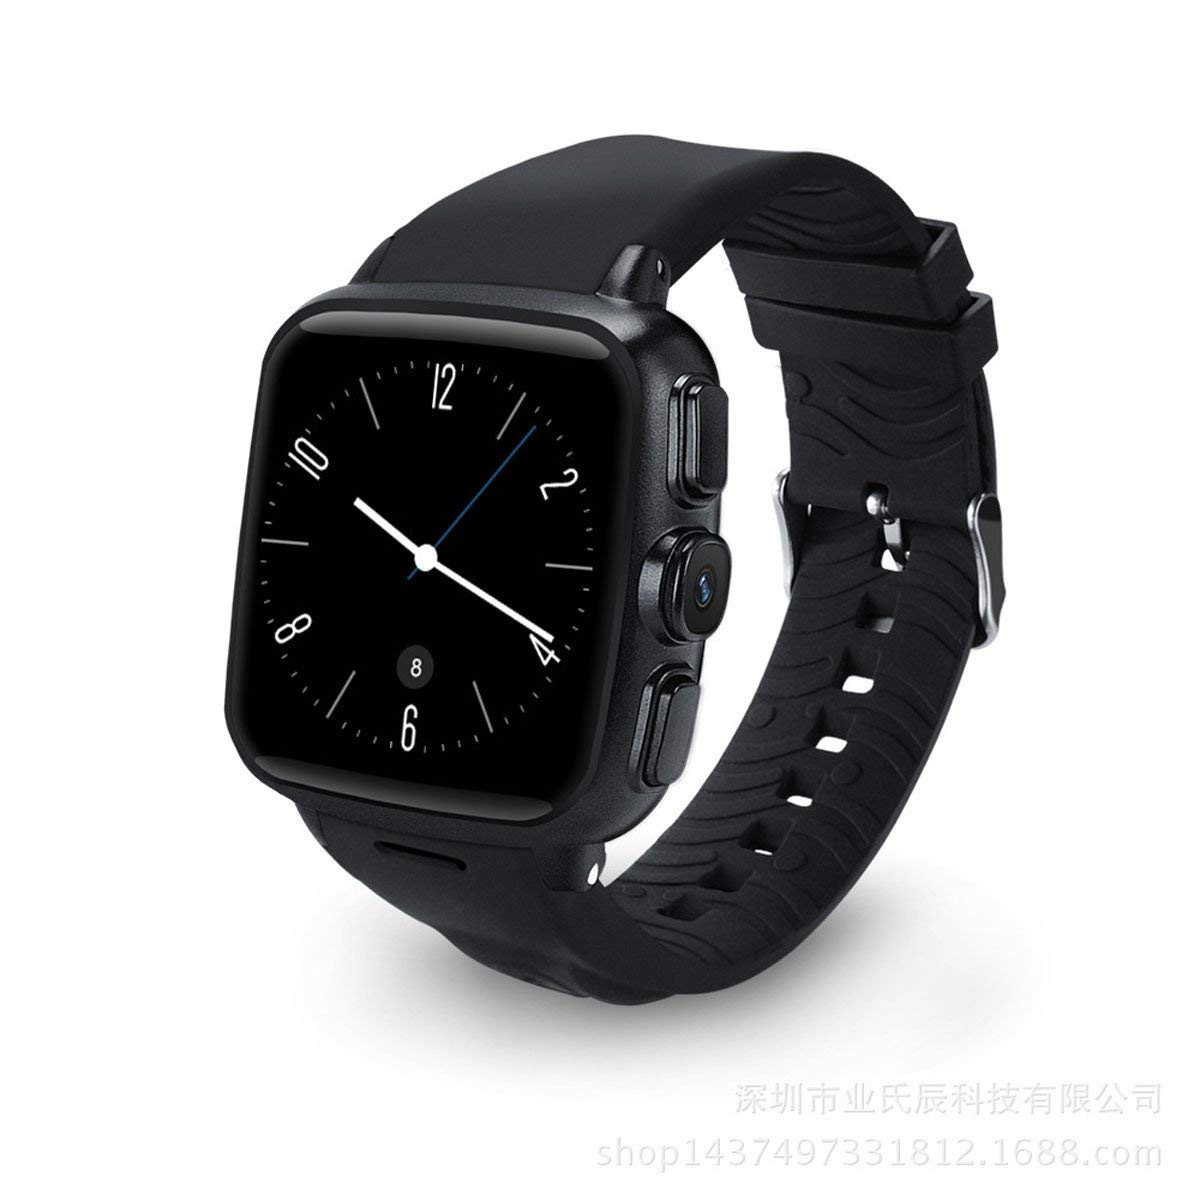 Minz smart watch Andrews WIFI 3G GPS positioning Smart wear camera Heart rate monitoring (Color : Black)